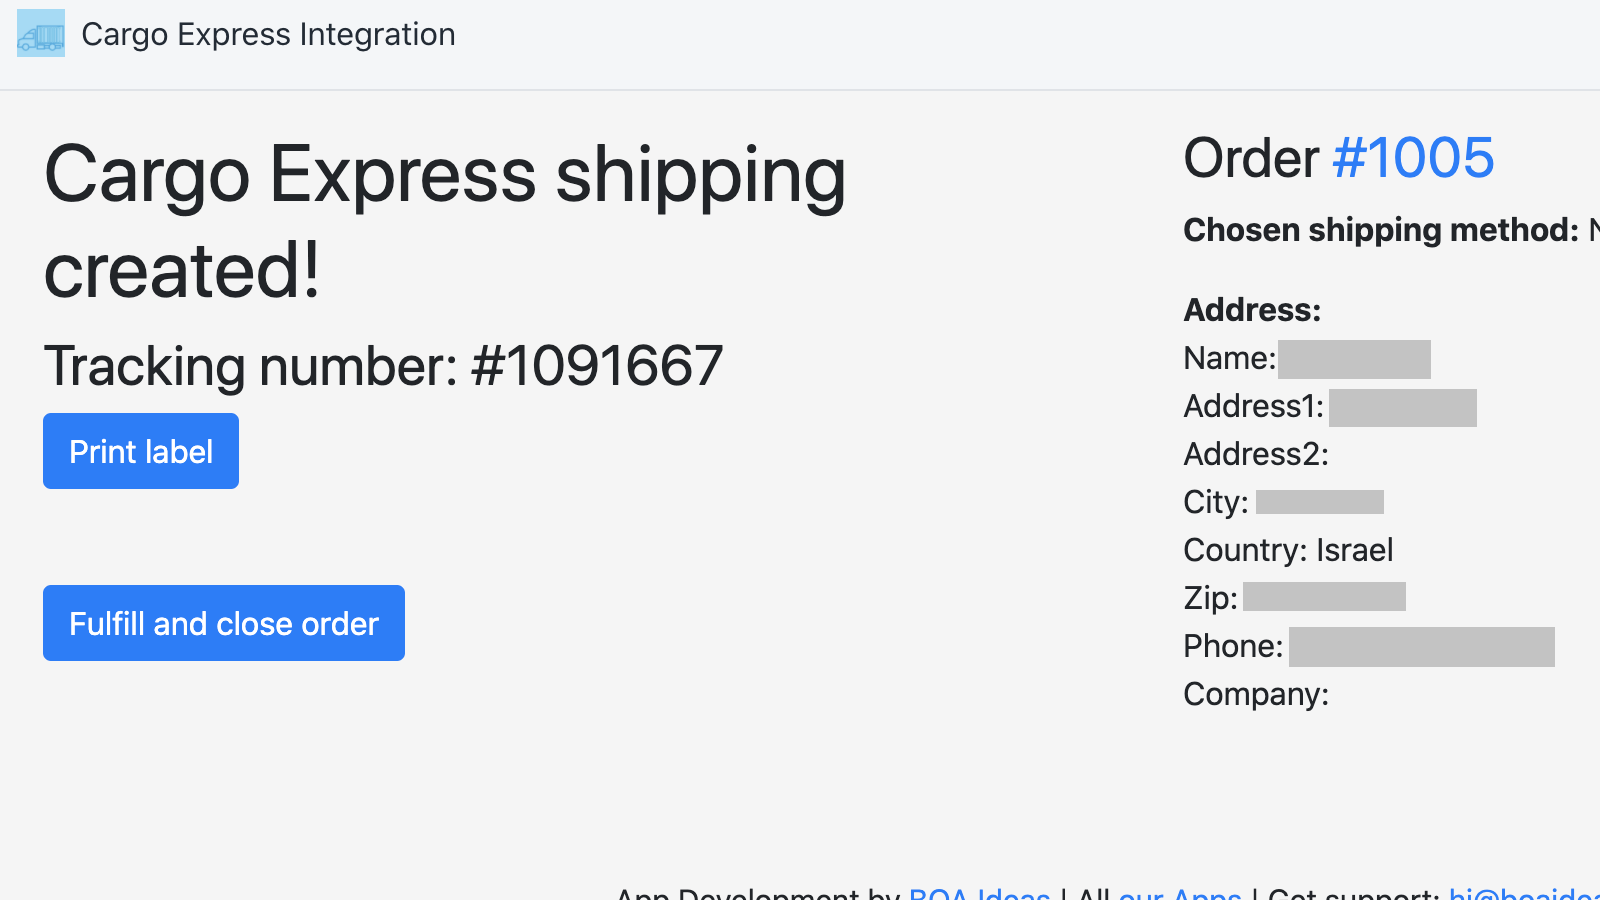 Get tracking number information and use it to fulfil the order